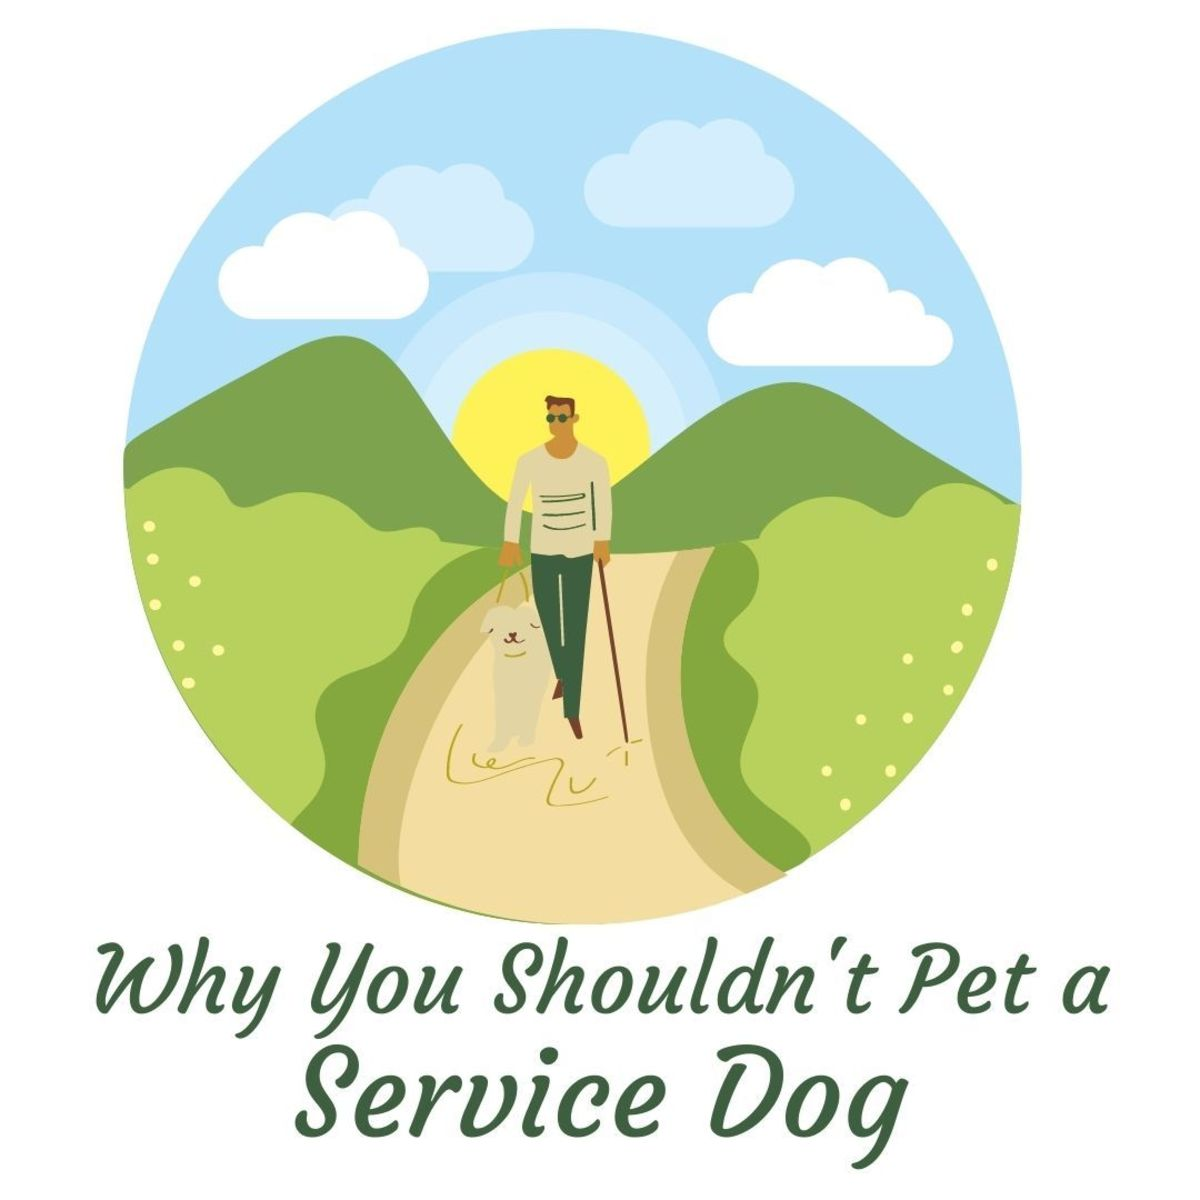 Why Can't I Pet a Service Dog? Why You Should Respect the Vest